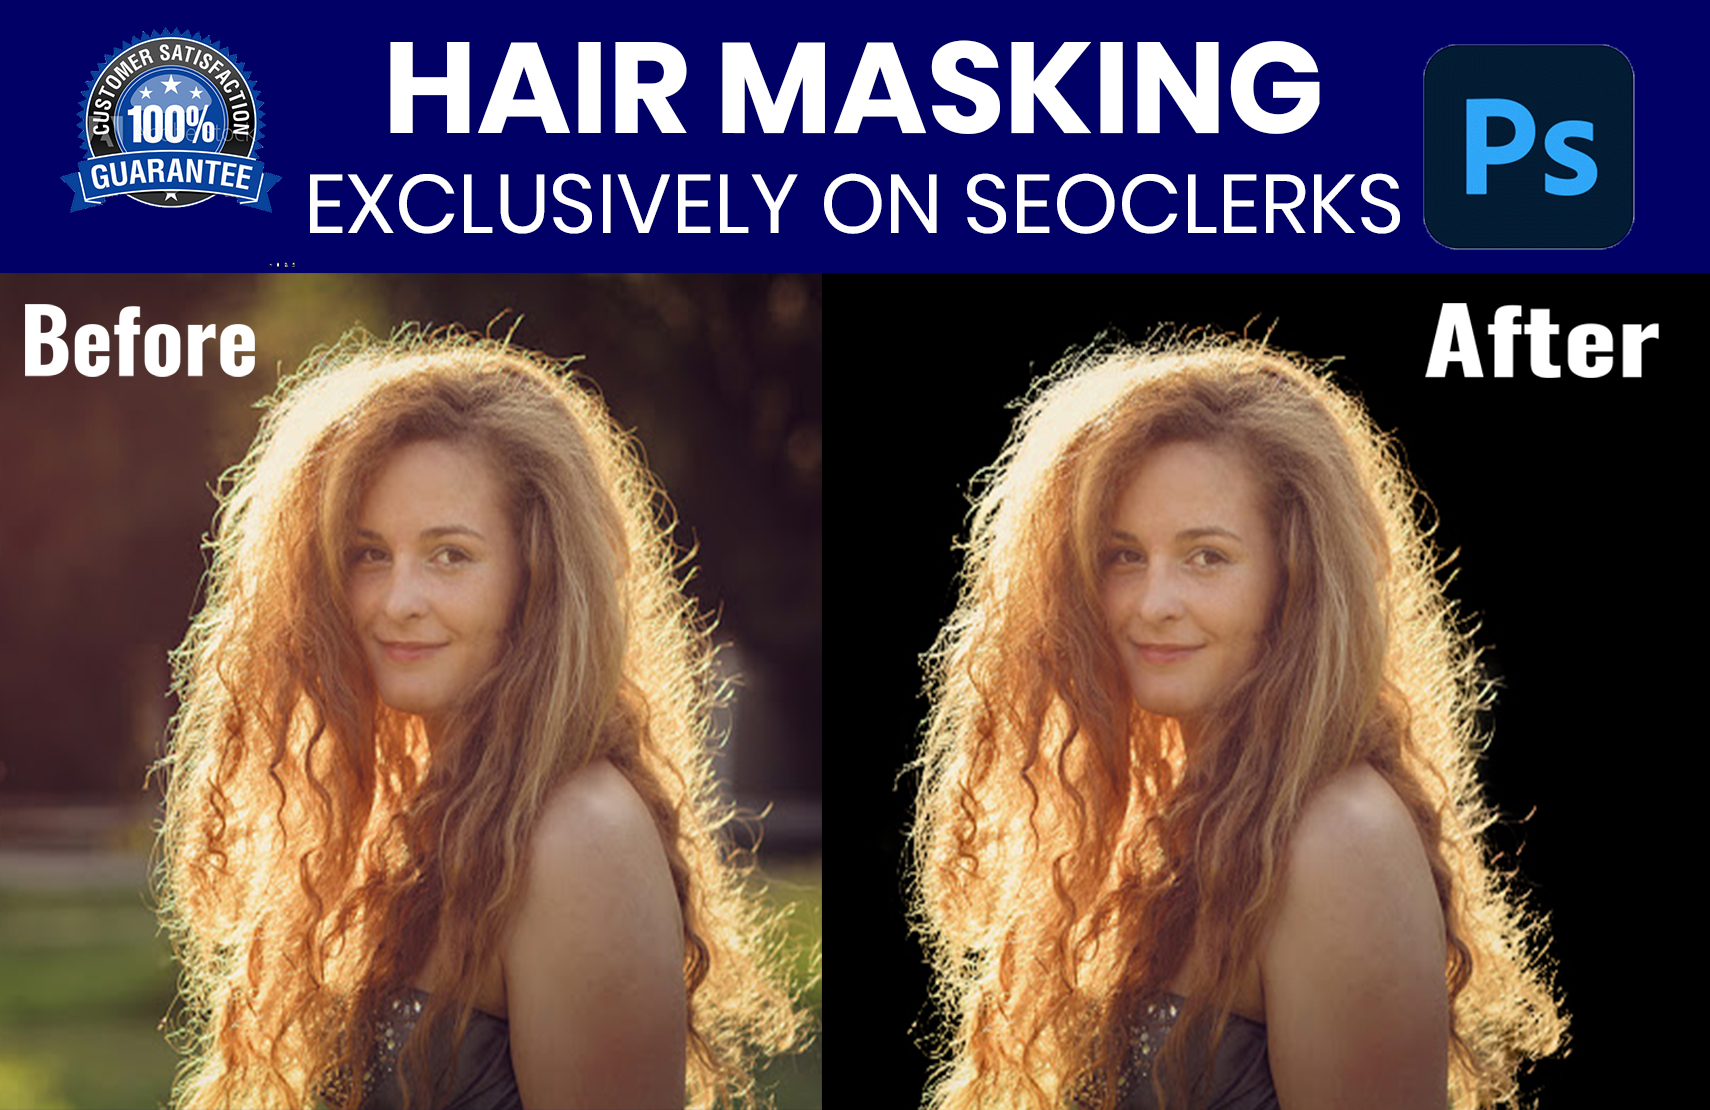 I will do photoshop hair masking professionally with low price